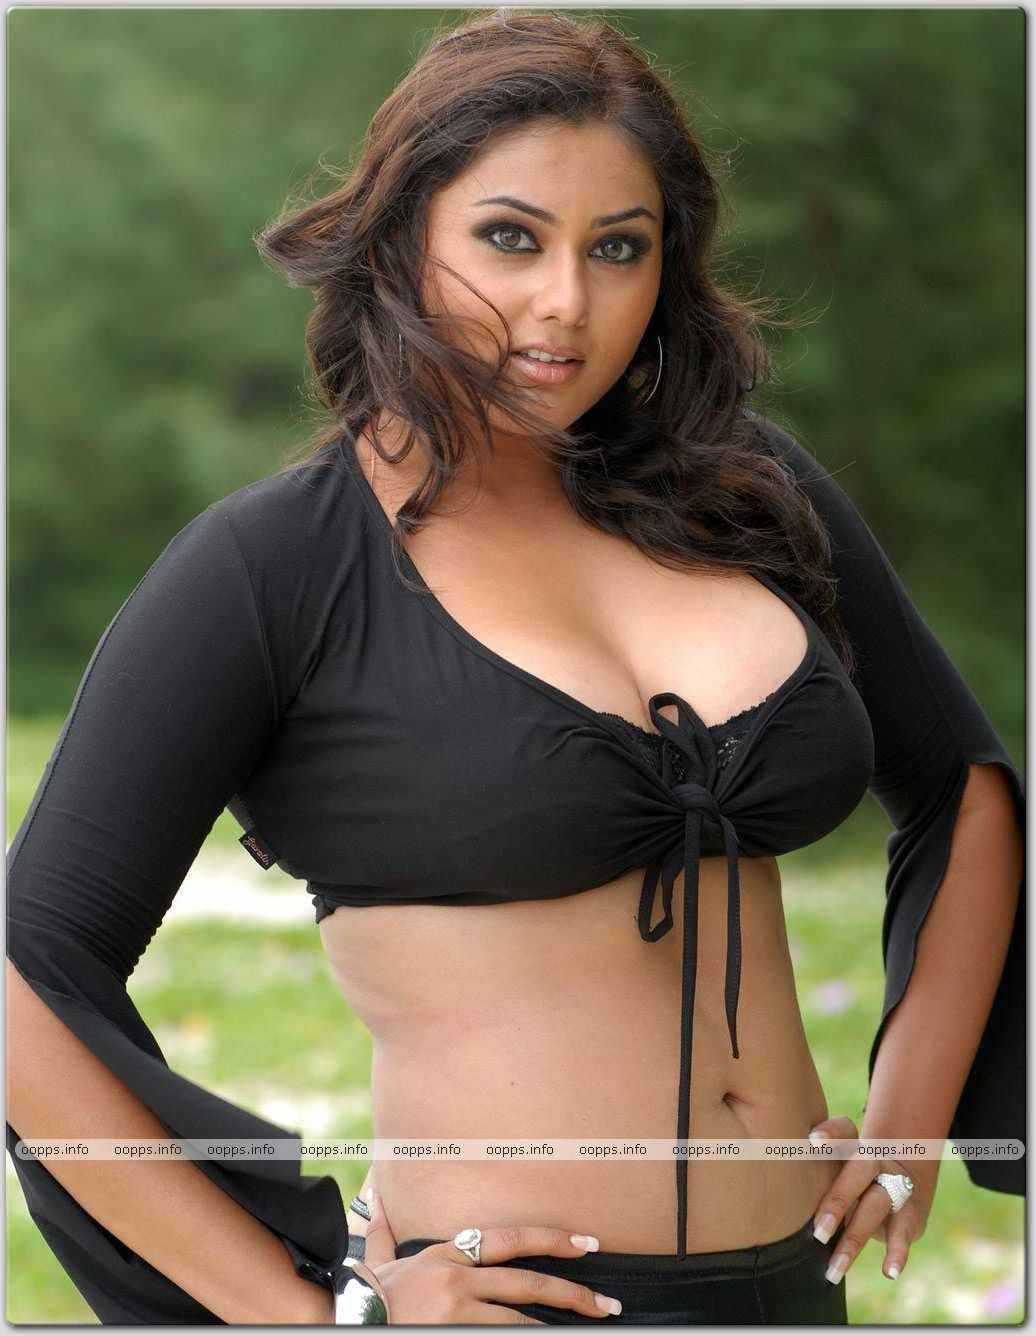 Namita Hot Pictures9